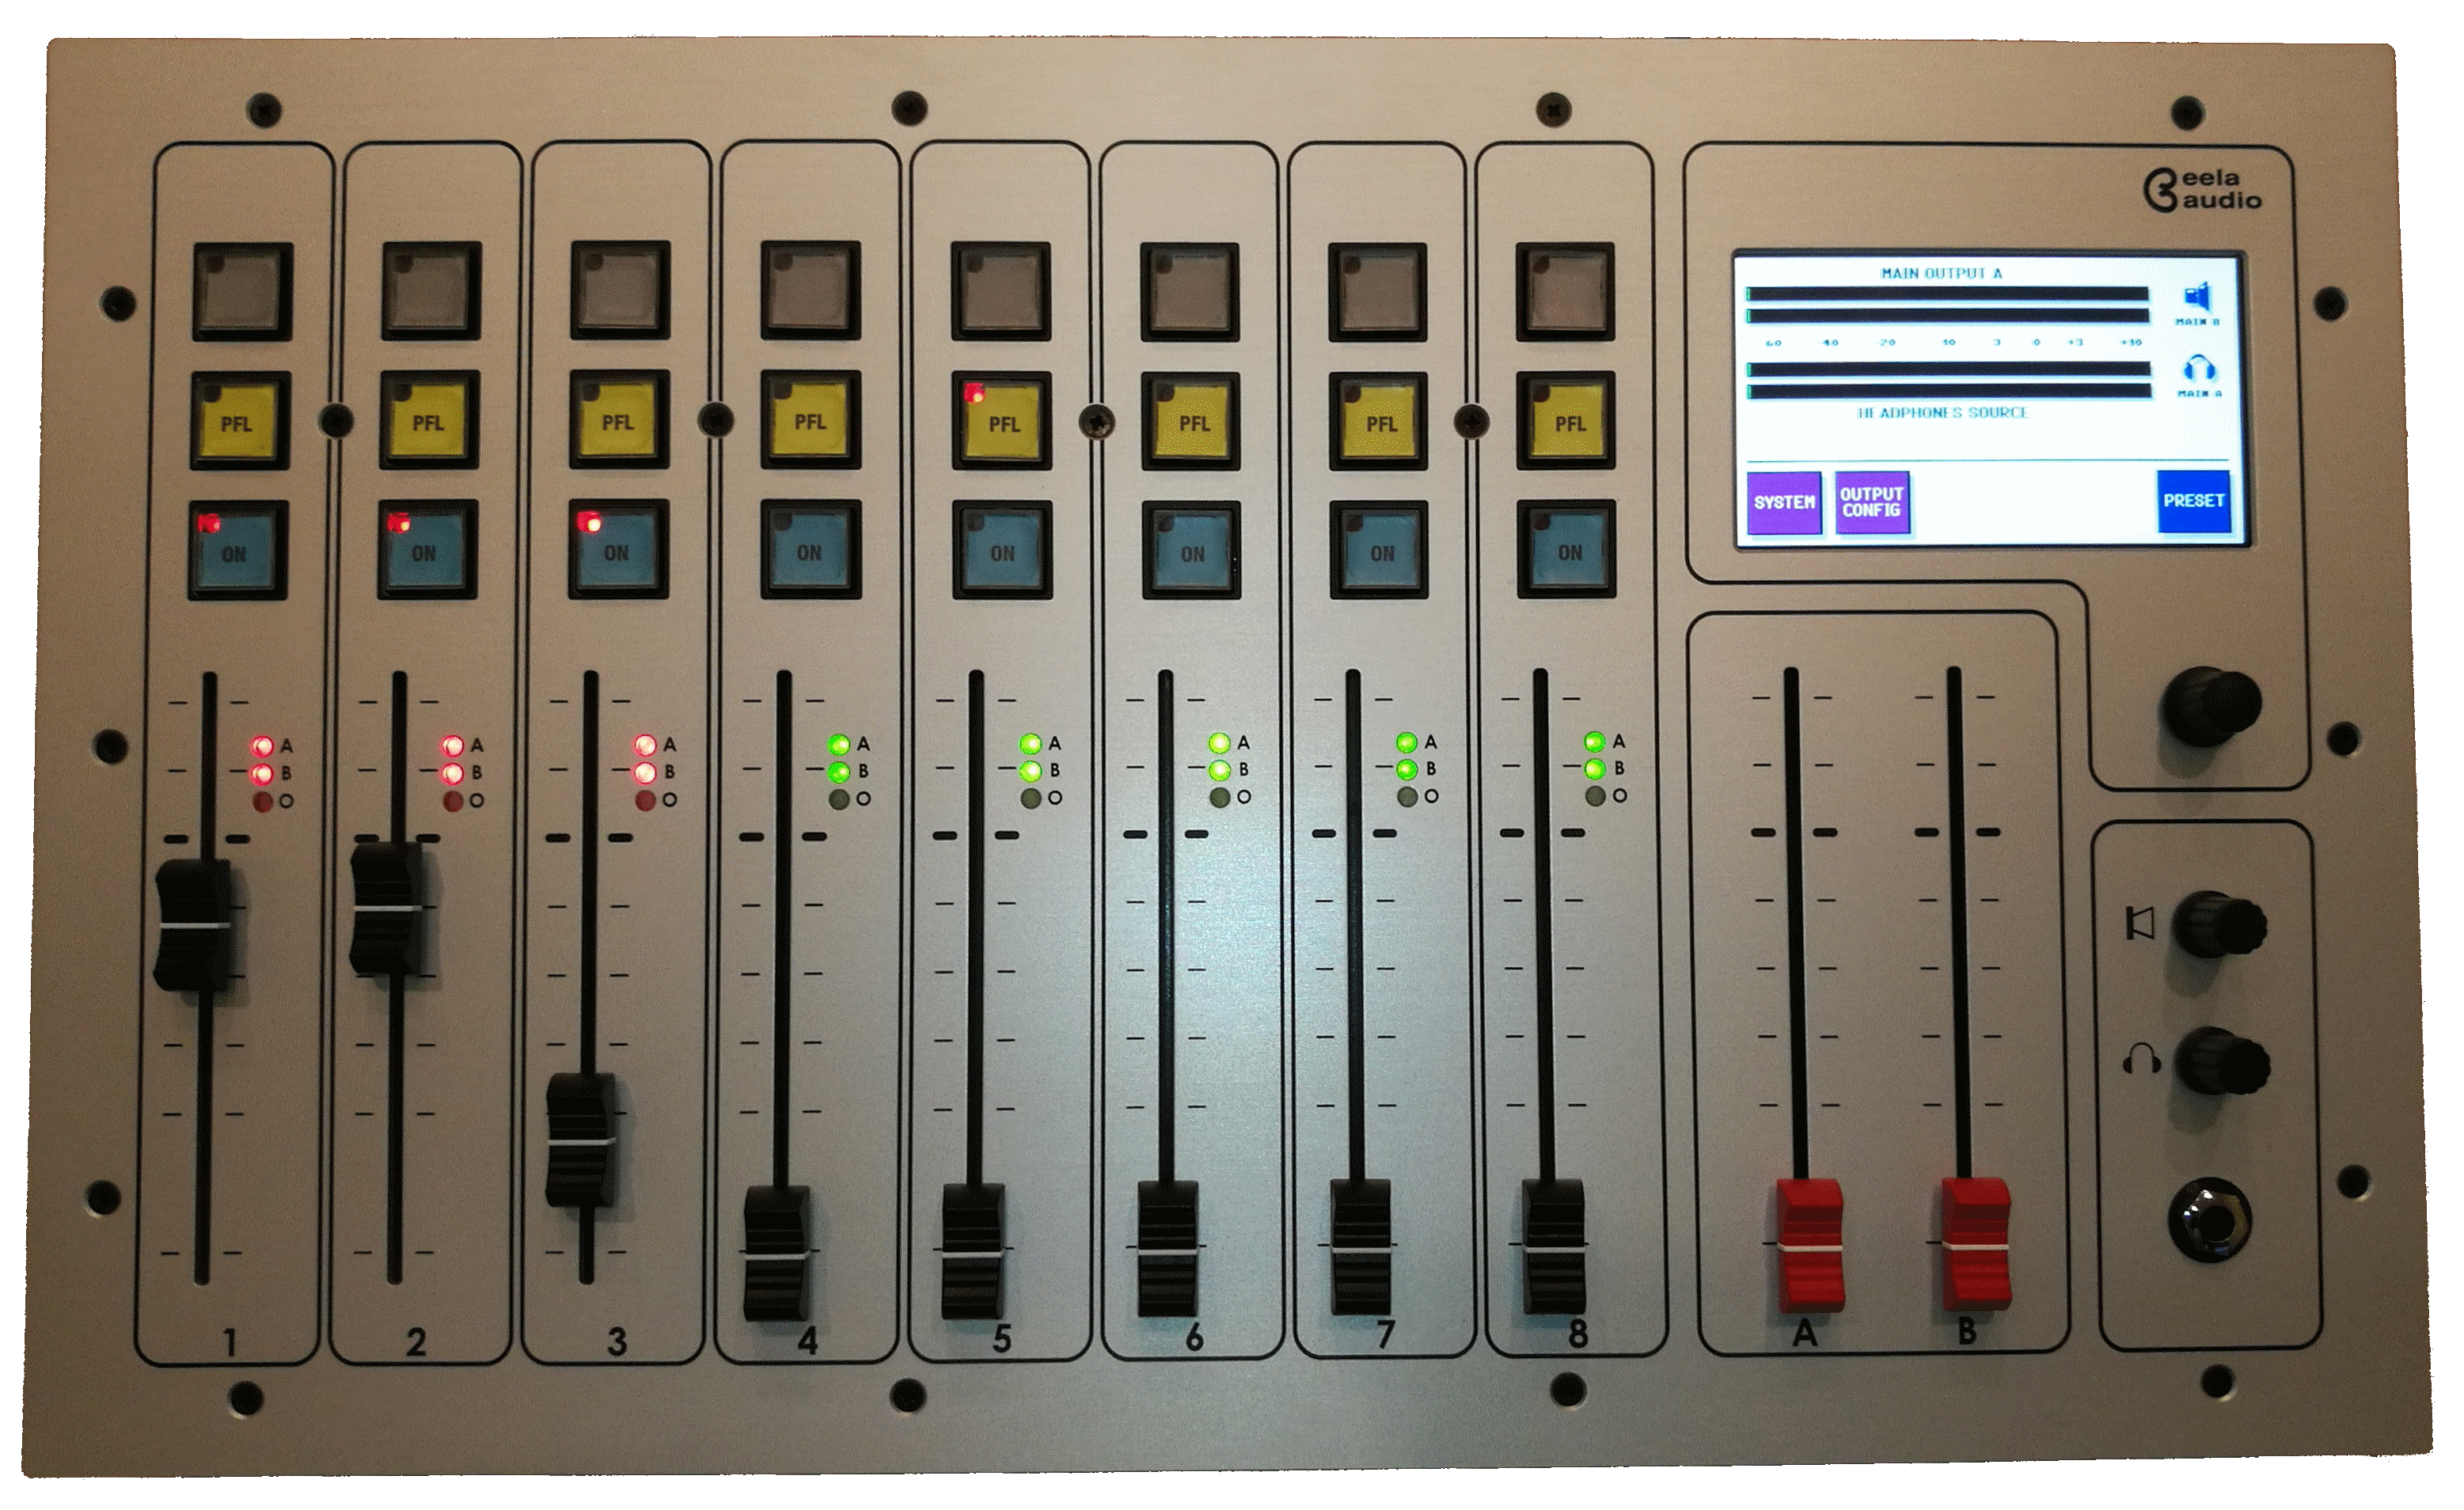 Eeela audio d3 view1